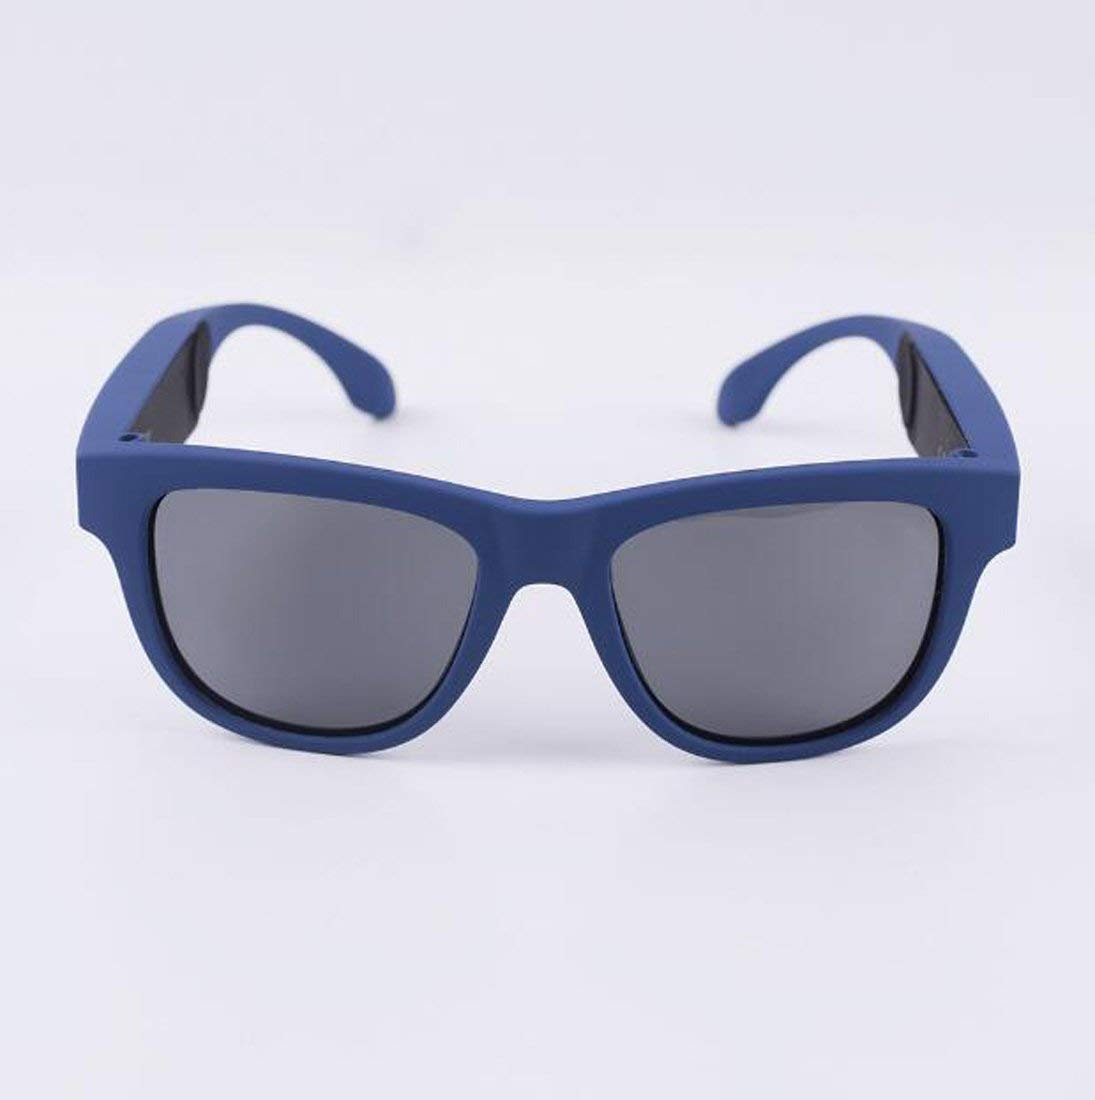 192f828a30a Get Quotations · Hzhy Bone conduction glasses G1 Bluetooth eyes driving  riding outdoor polarized touch movement eyes (Color